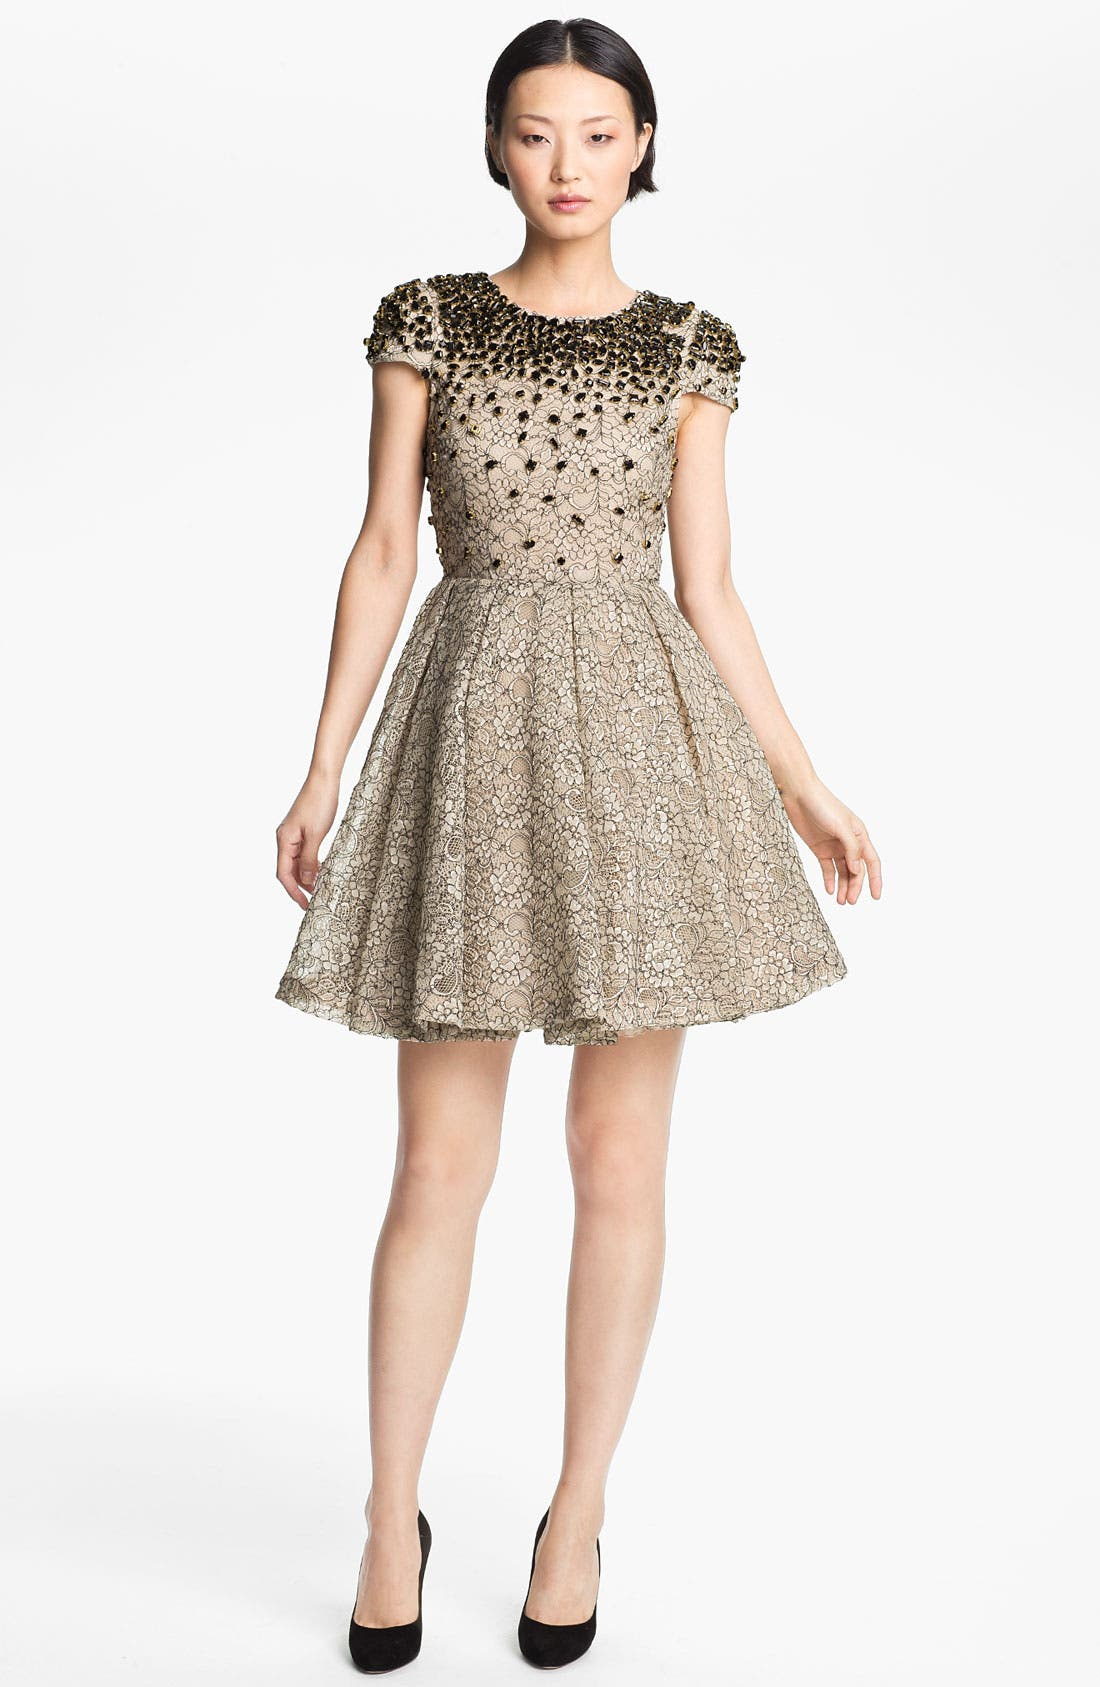 Alternate Image 1 Selected - Alice + Olivia 'Aubree' Embellished Dress